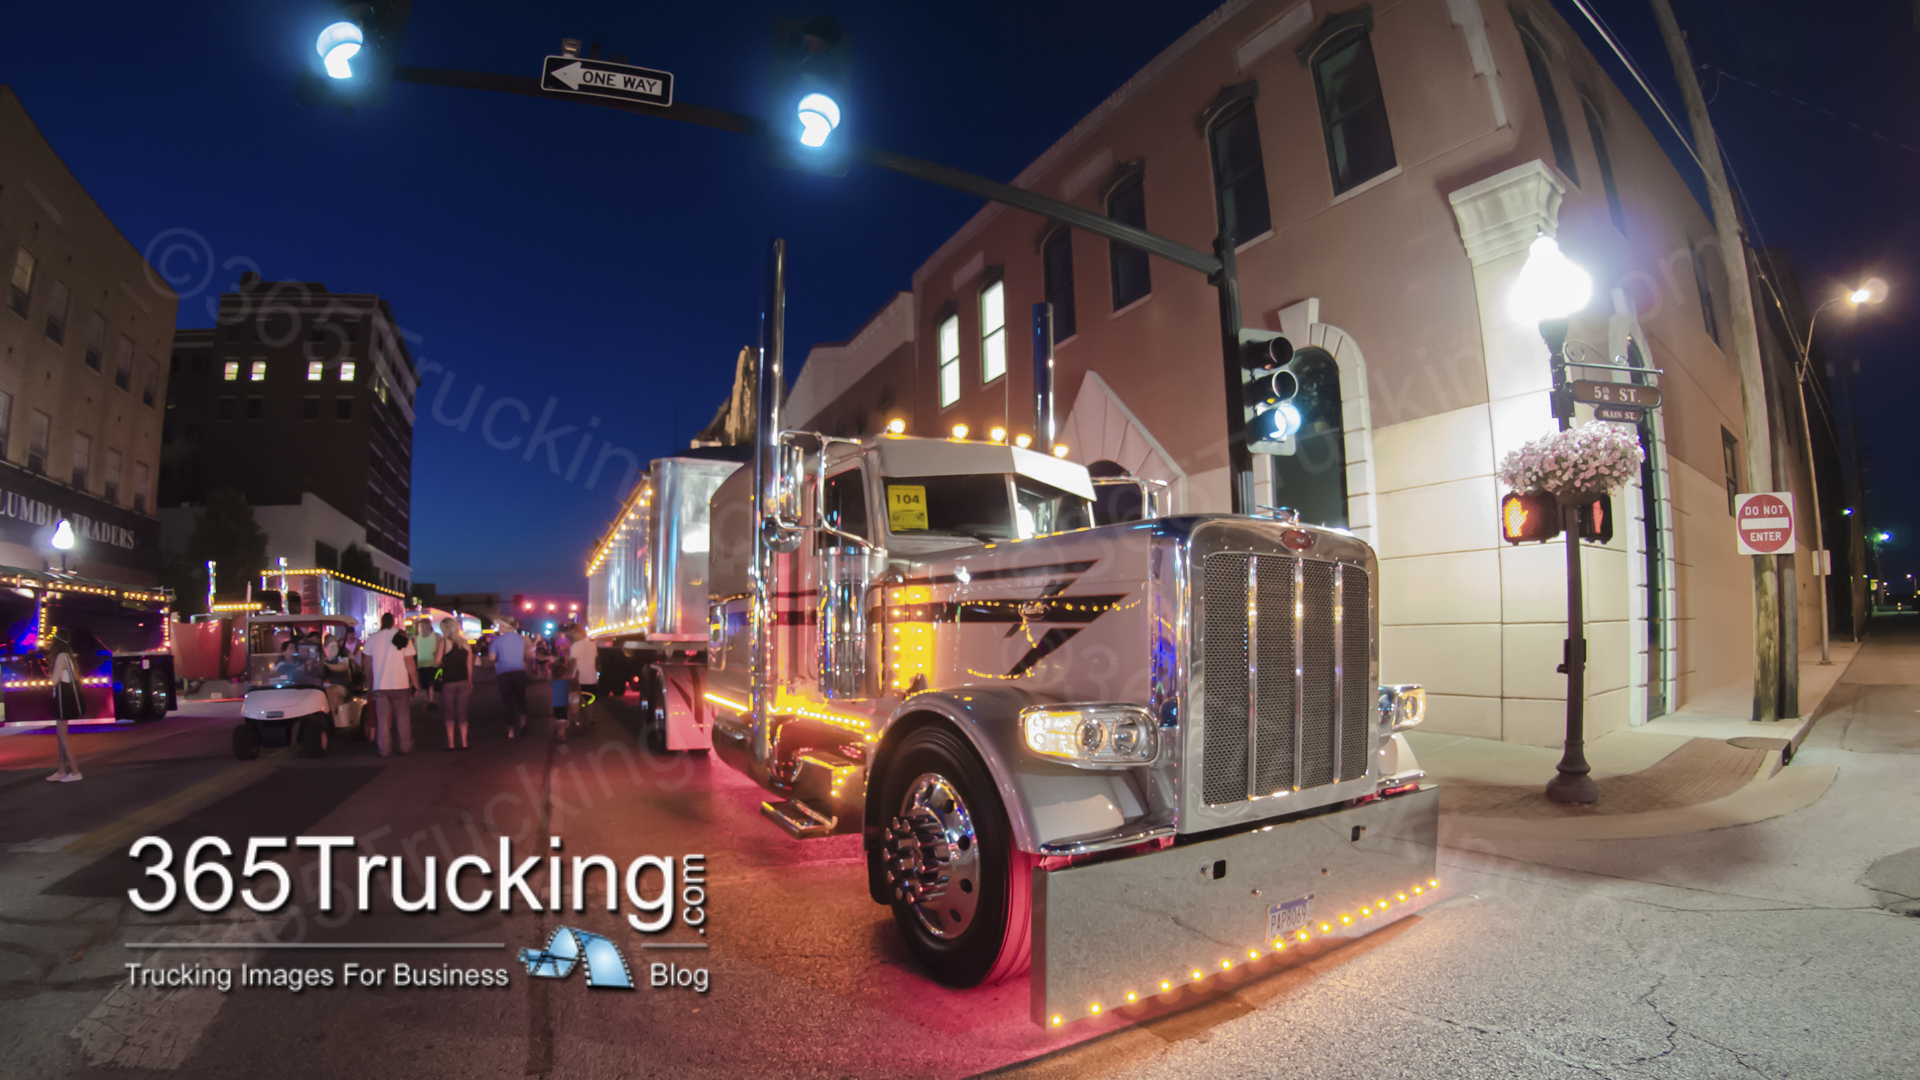 To View all shell rotella images please click here www.truckstockimages.com